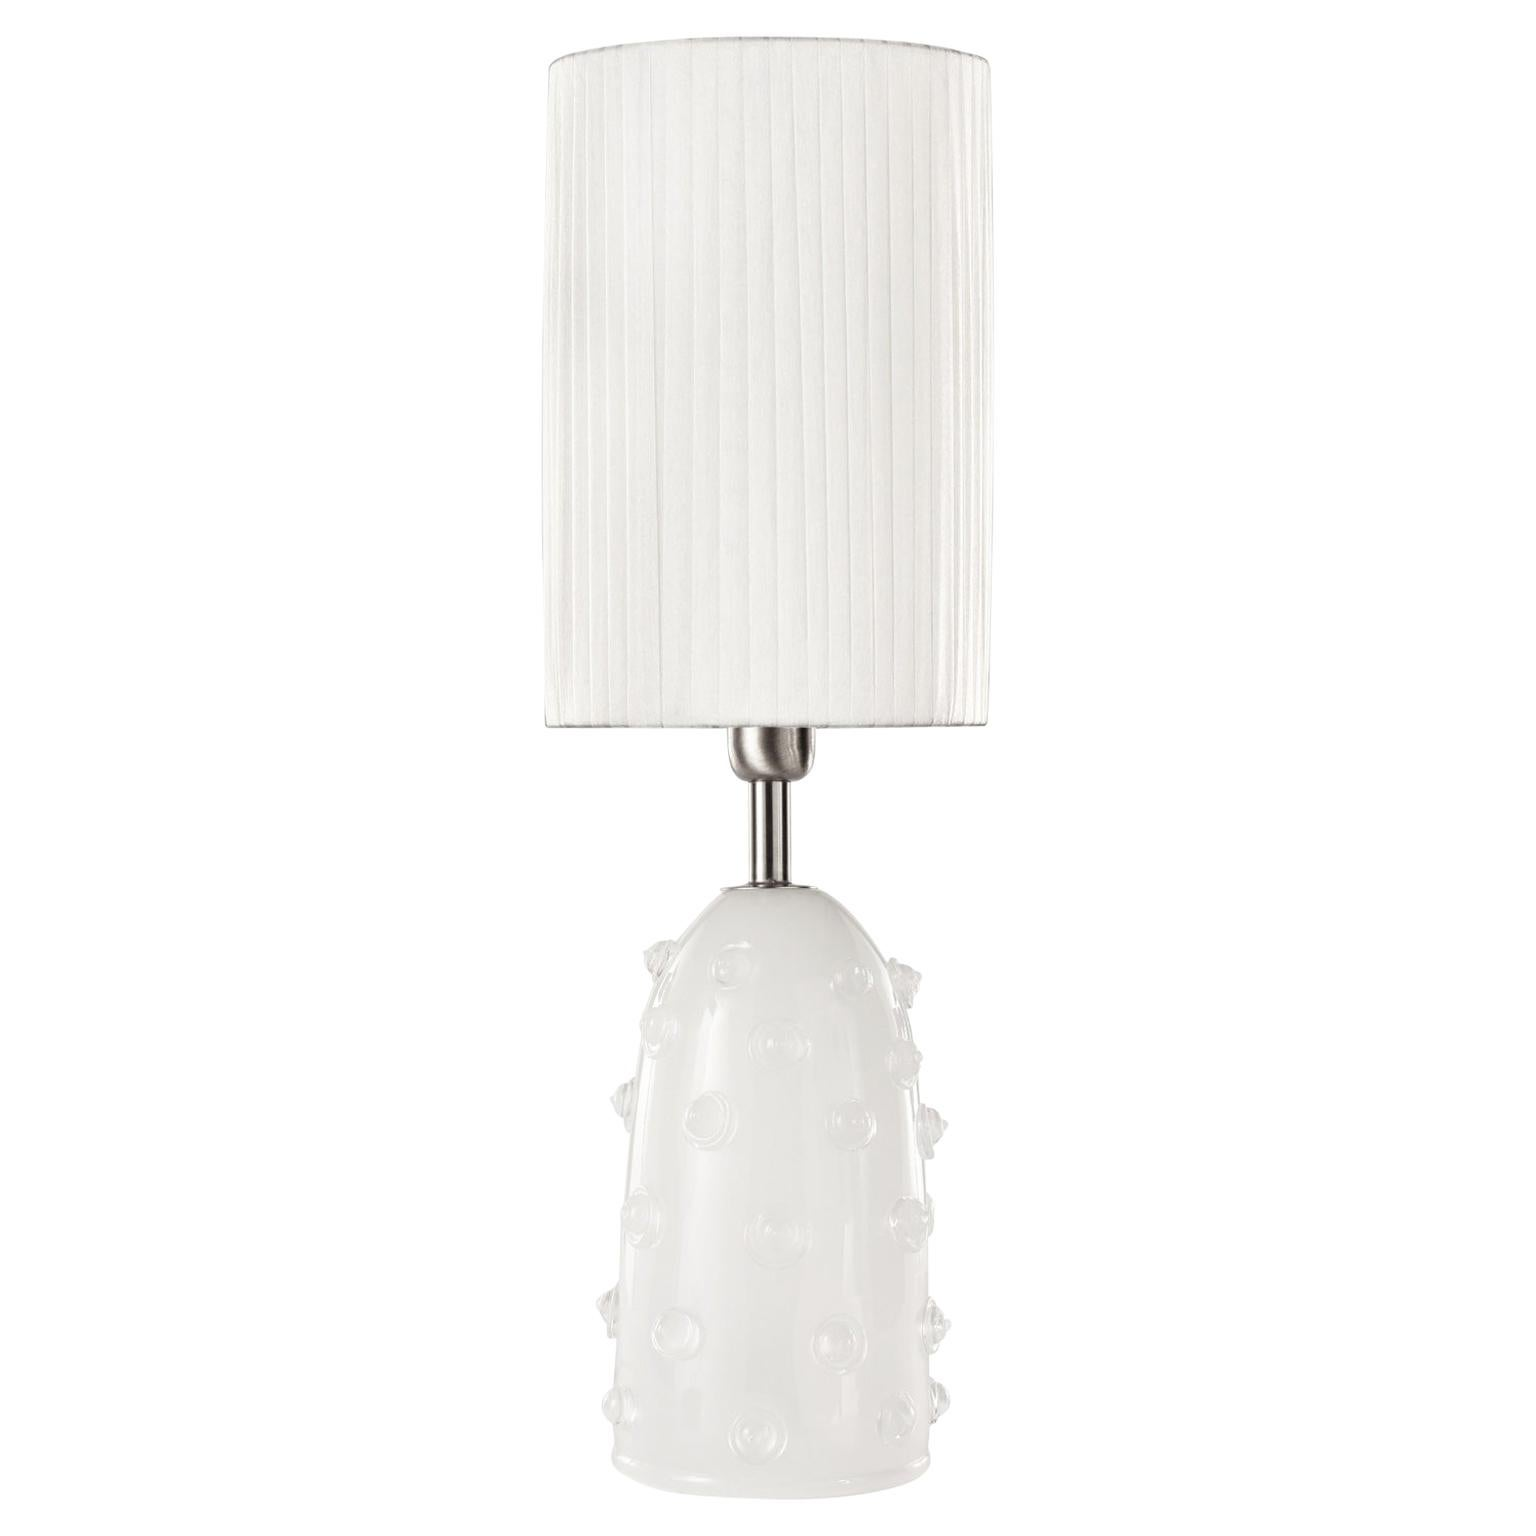 "Artistic Table Lamp Silk Glass Clear ""Borchie"" Grey Lampshade by Multiforme"